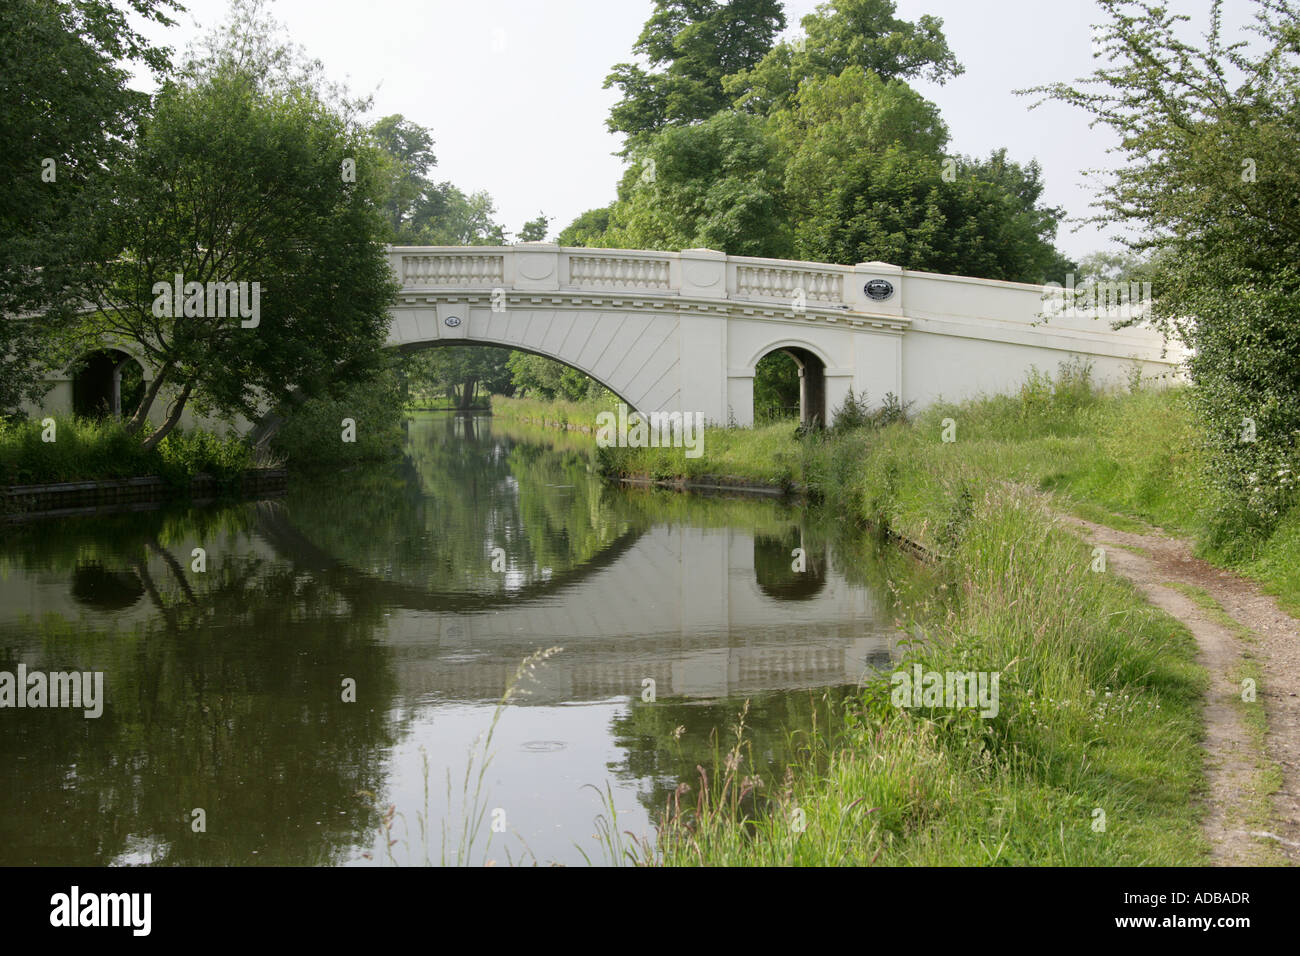 The Grove Bridge No 164 over the Grand Union Canal Watford Herts Stock Photo